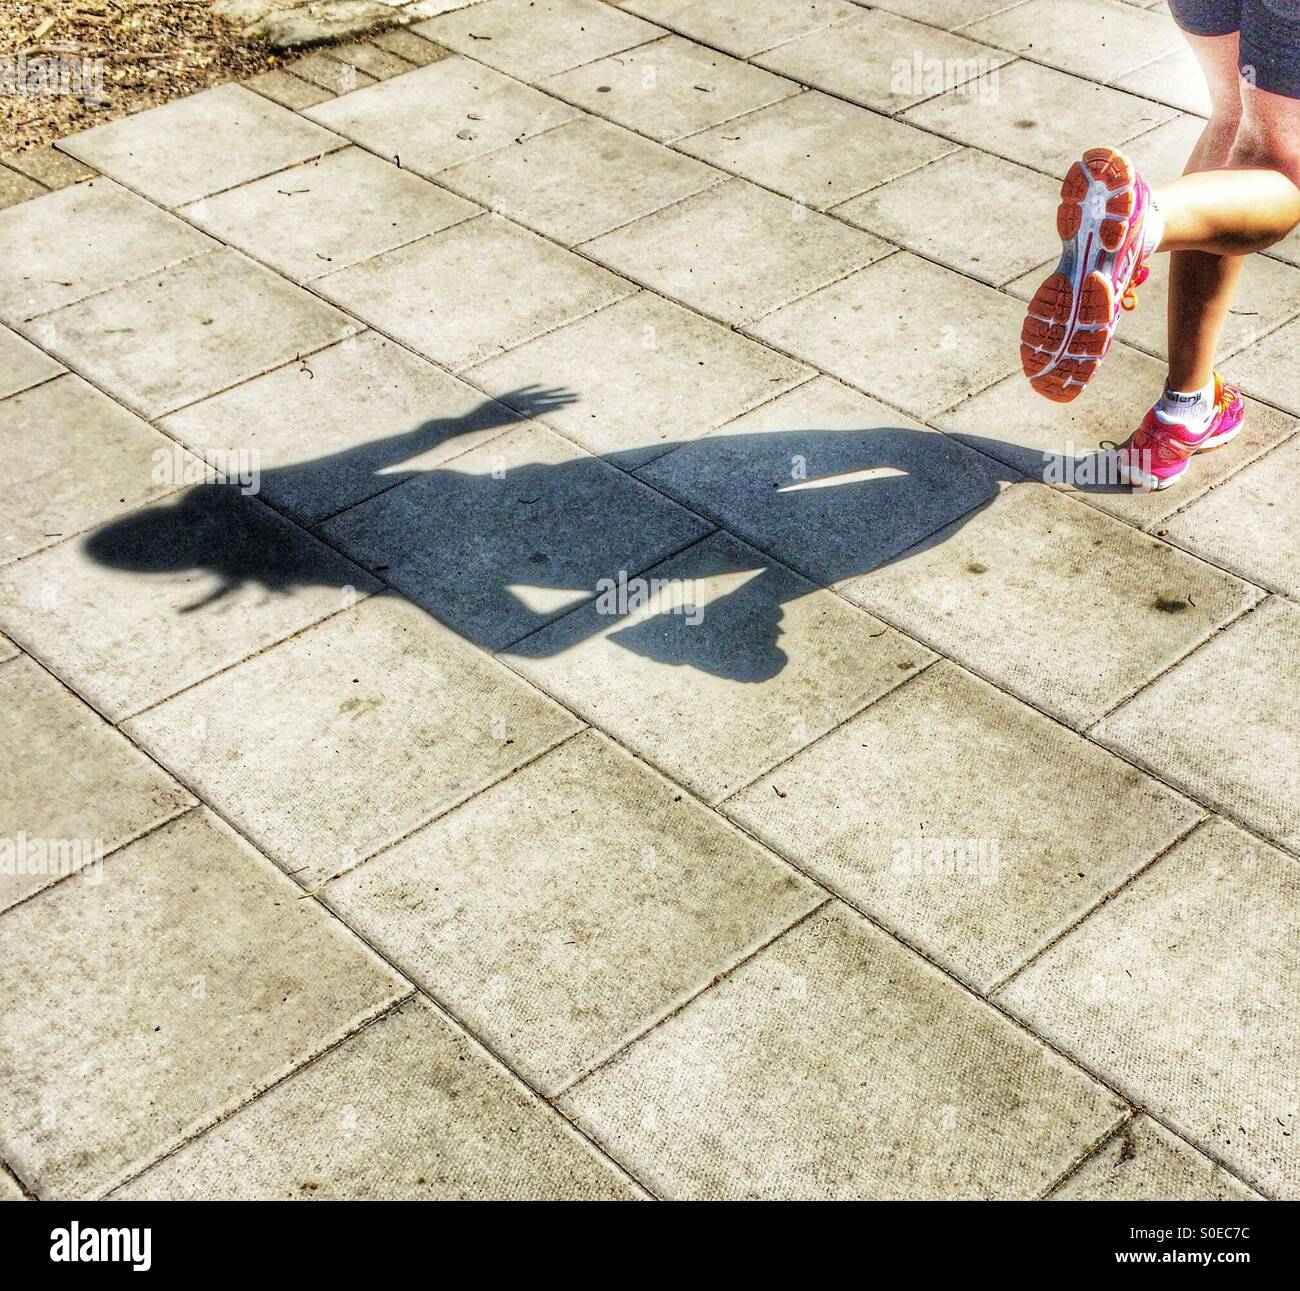 A shadow of an athlete running on the street. - Stock Image